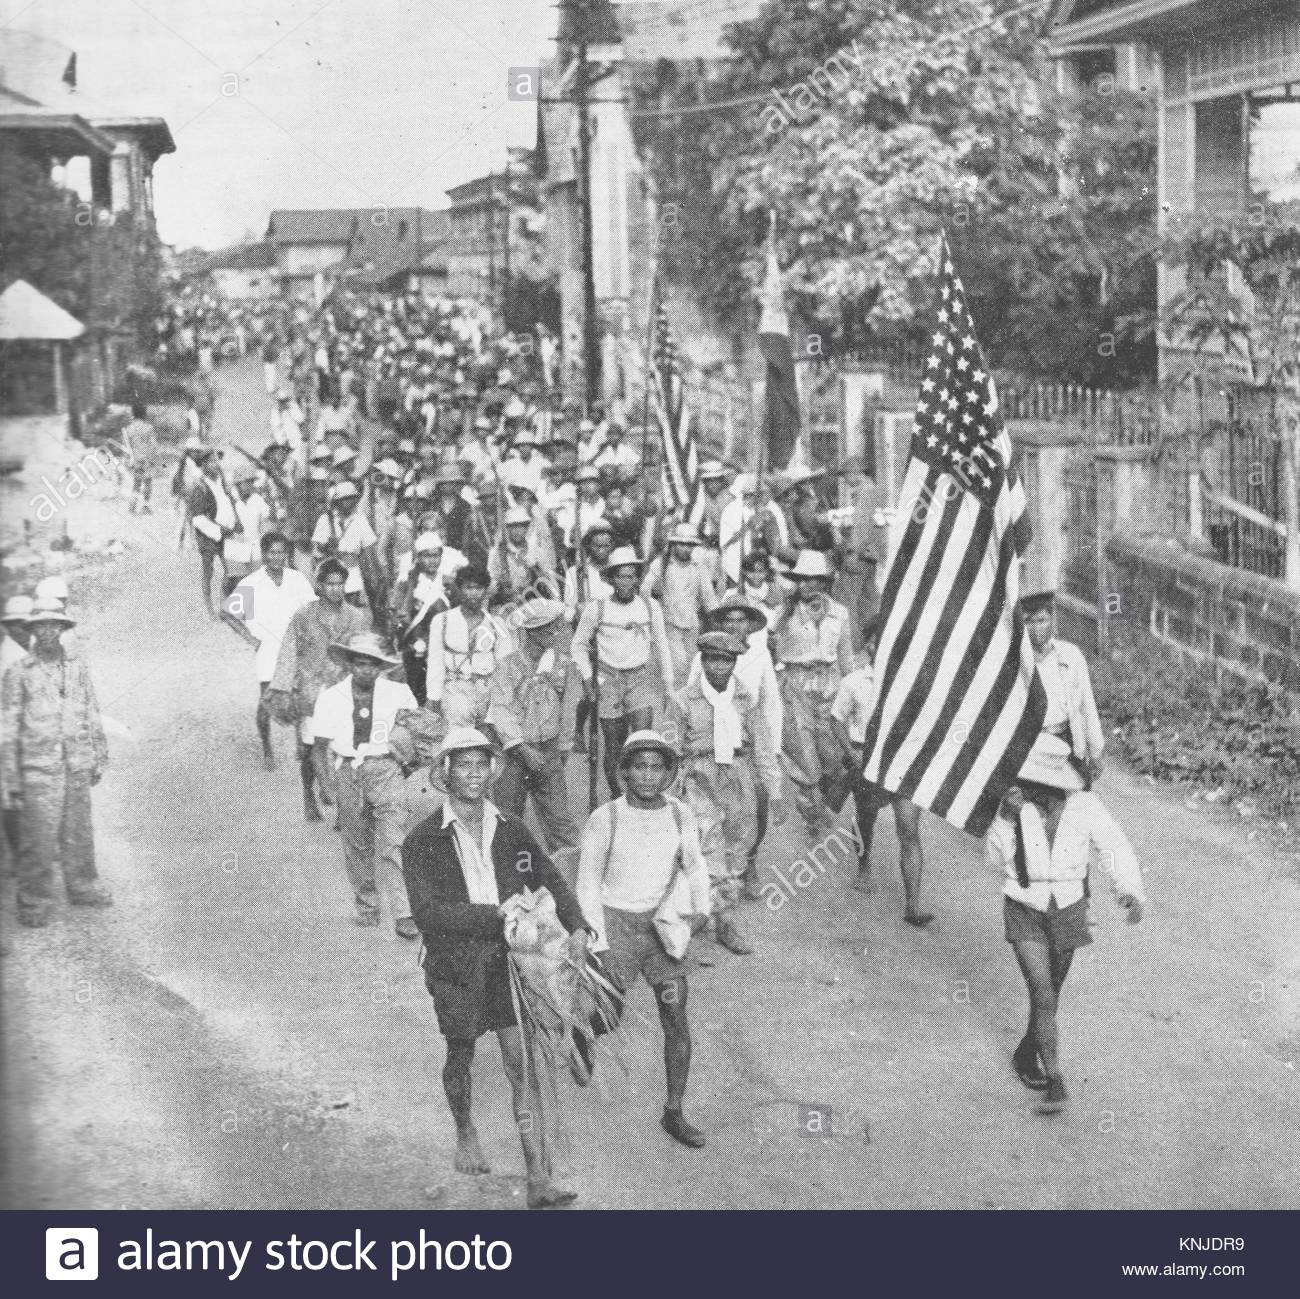 the details of the occupation of japan by american forces American occupation of japan after world war ii  the terms of surrender included the occupation of japan by allied military forces, assurances that japan would.